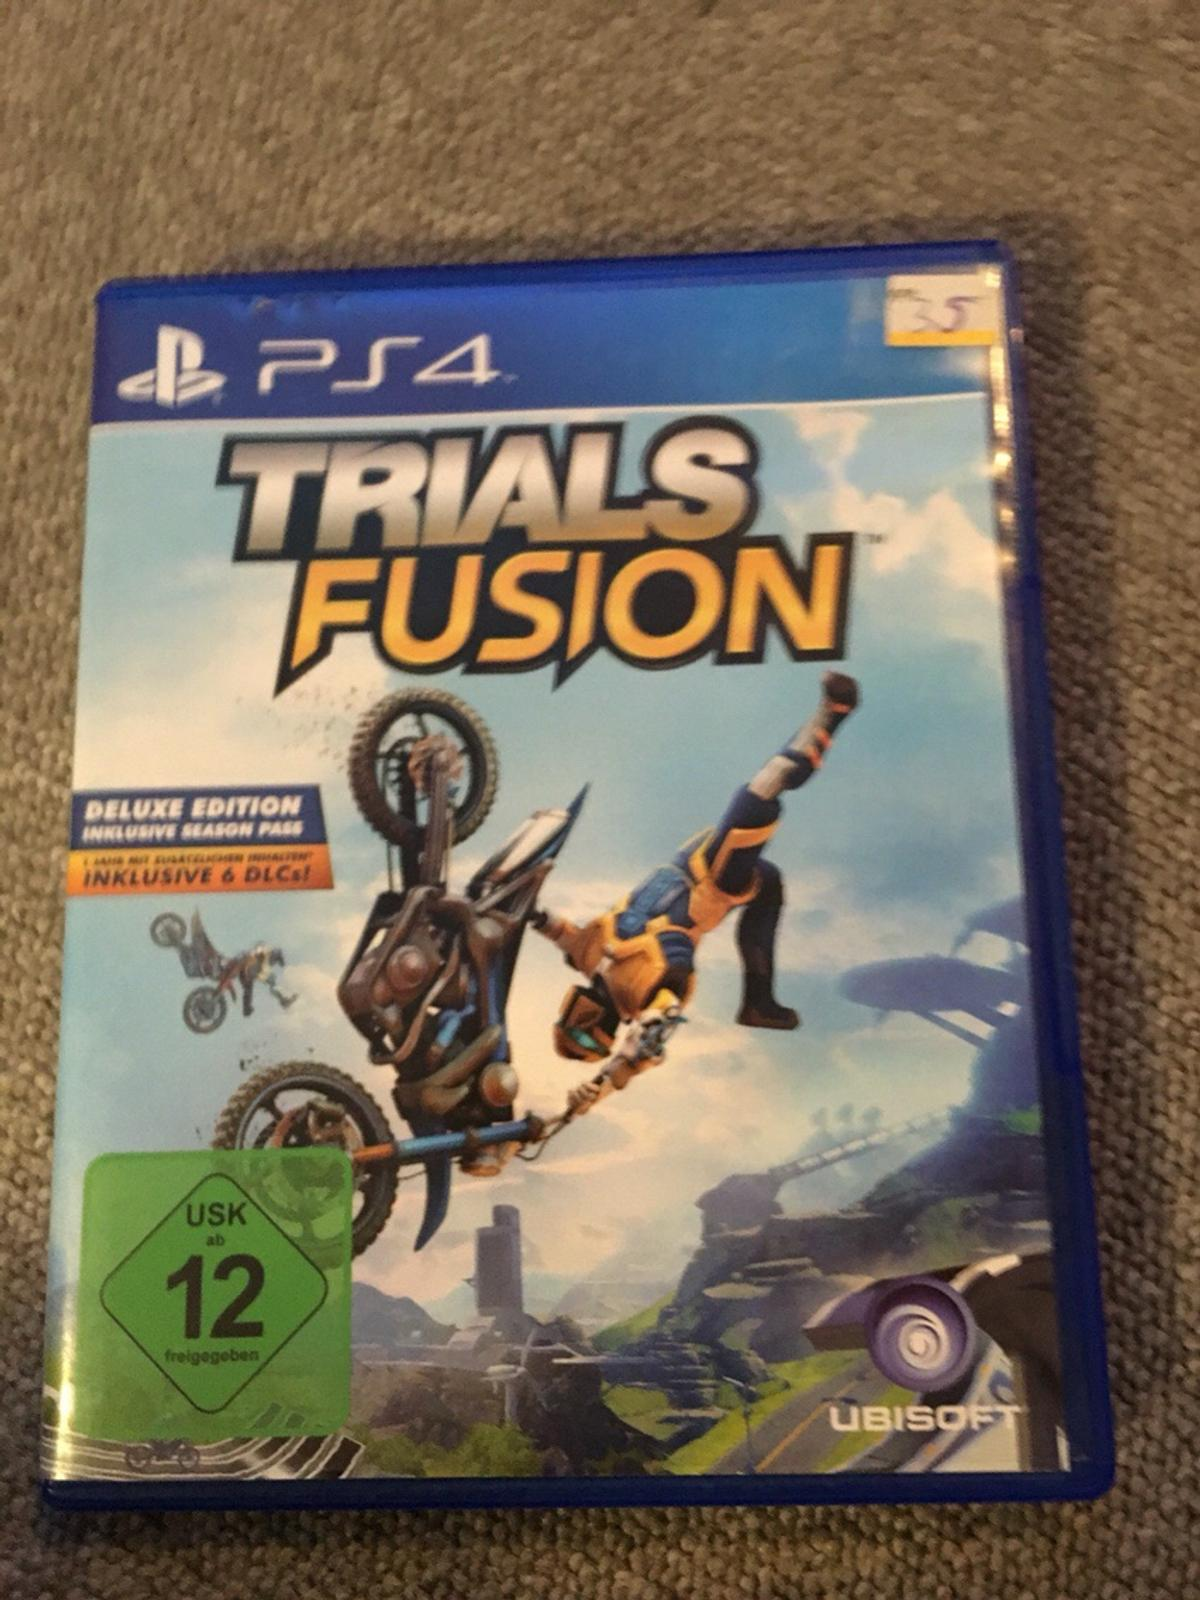 PS4 Trial Fusion